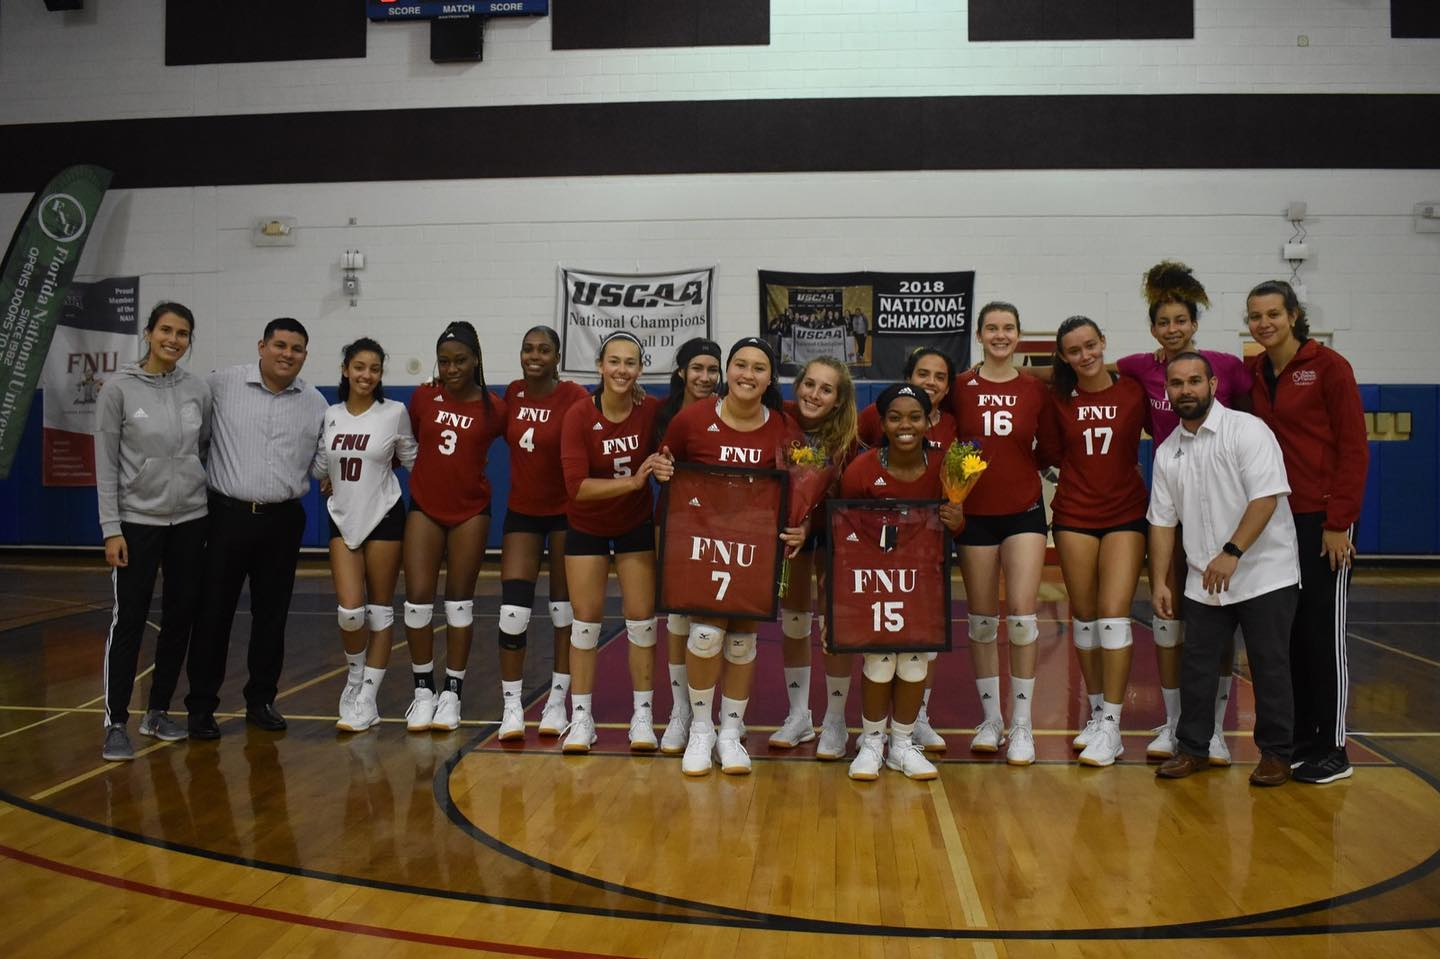 FNU Women's Volleyball Senior Night team Picture